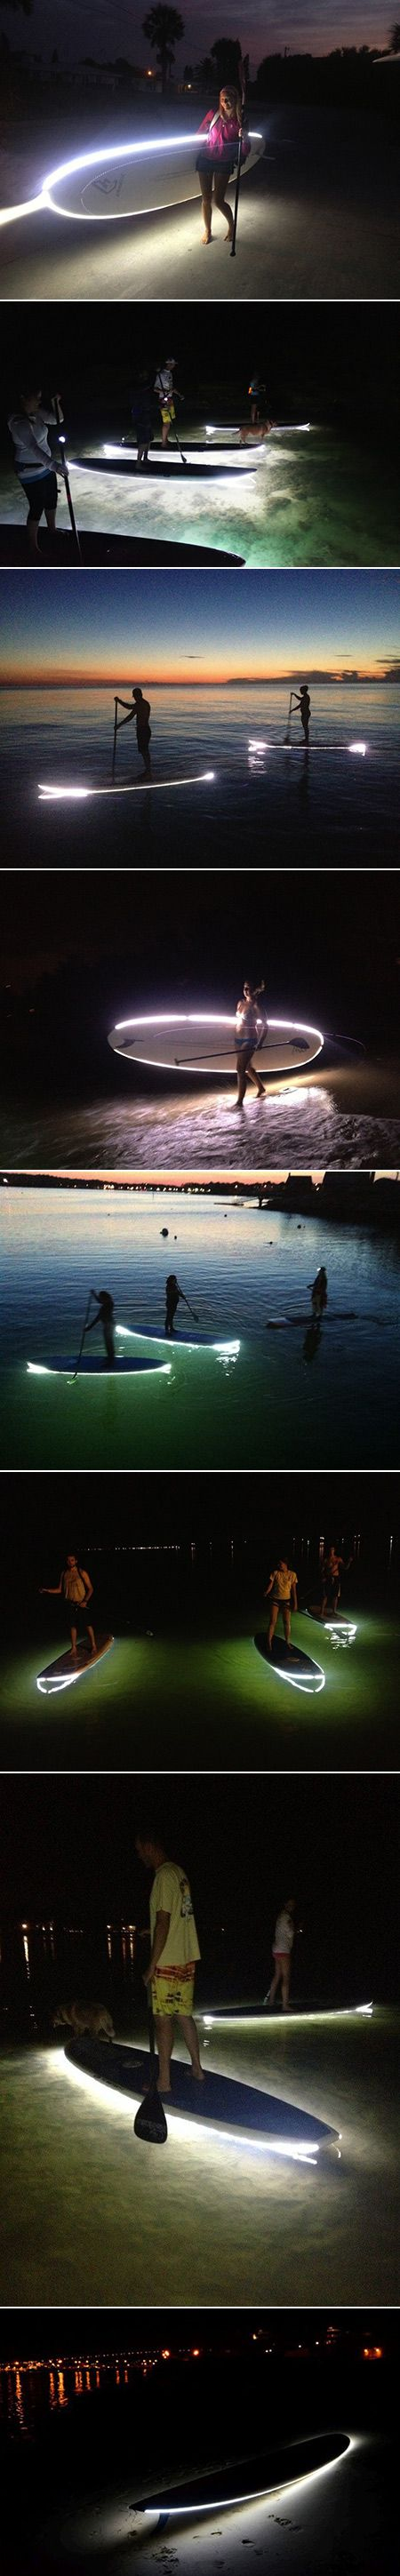 An accessory for paddle boards to make them safer to use at night. By attaching a custom-made, permanent strip of LED lights around the border of a board, surfers are given a source of light to guide them at night and illuminate the ocean floor below them.